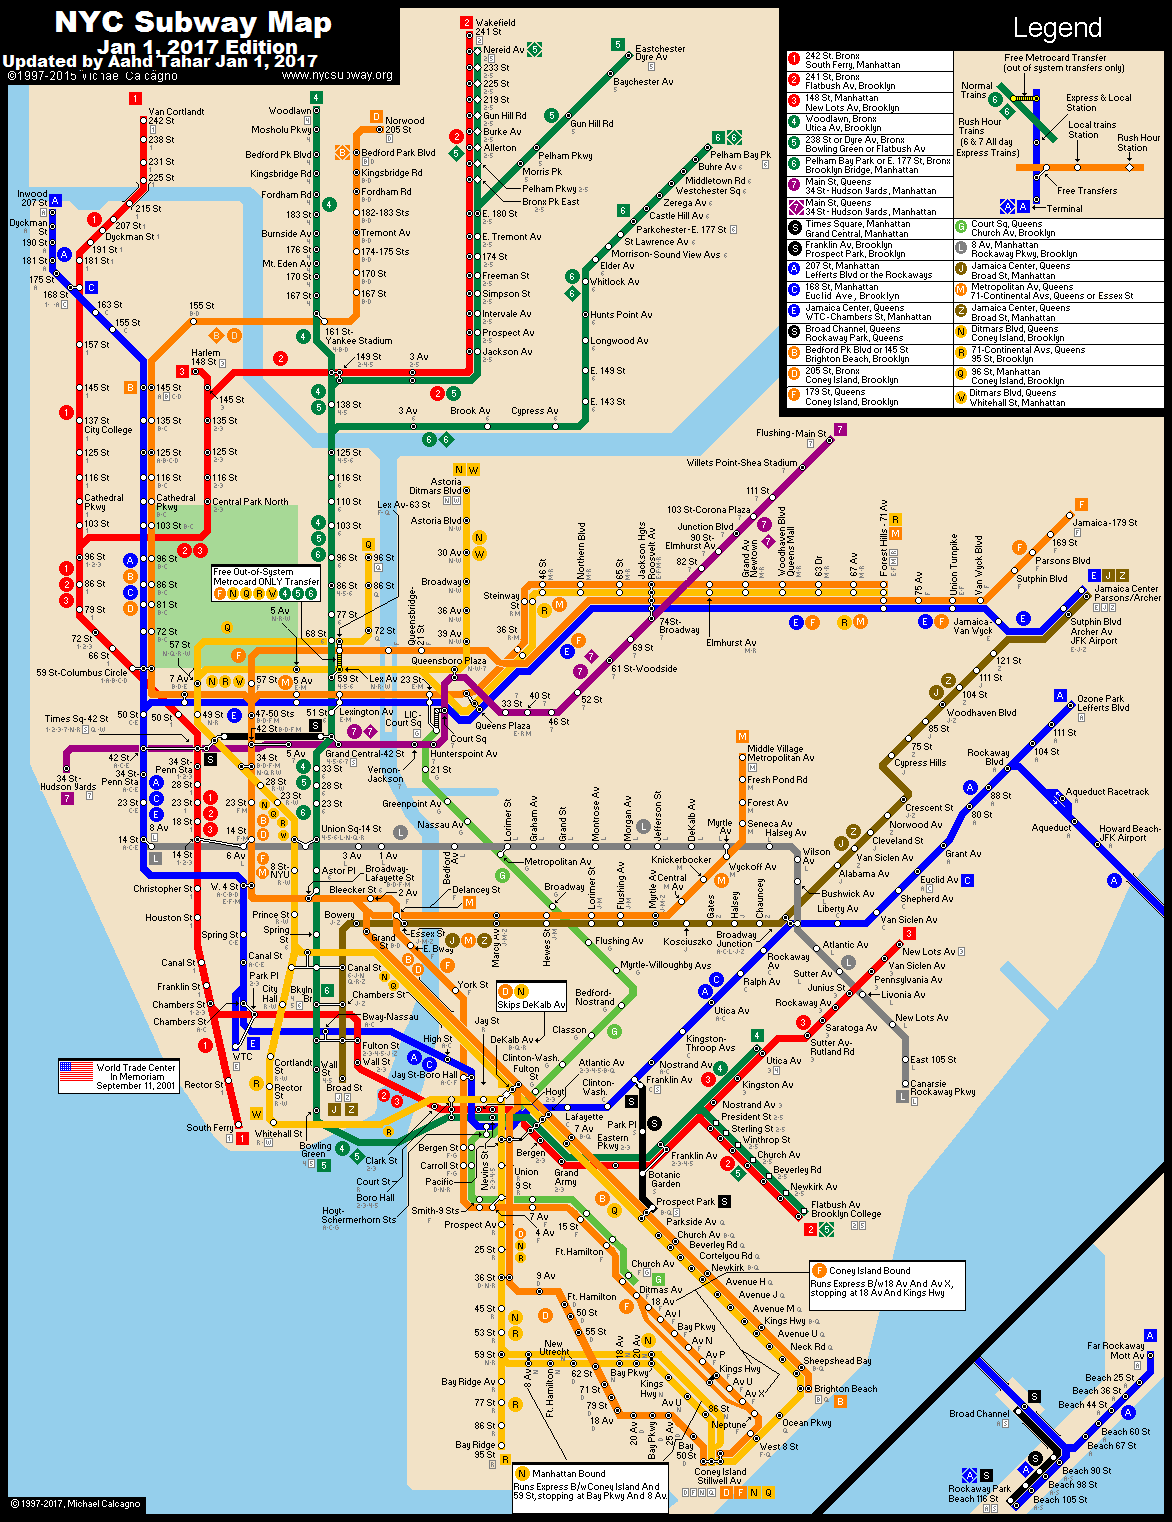 Nyc Subway Map From 2000.New York City Subway Crisis Keeps Getting Worse Video